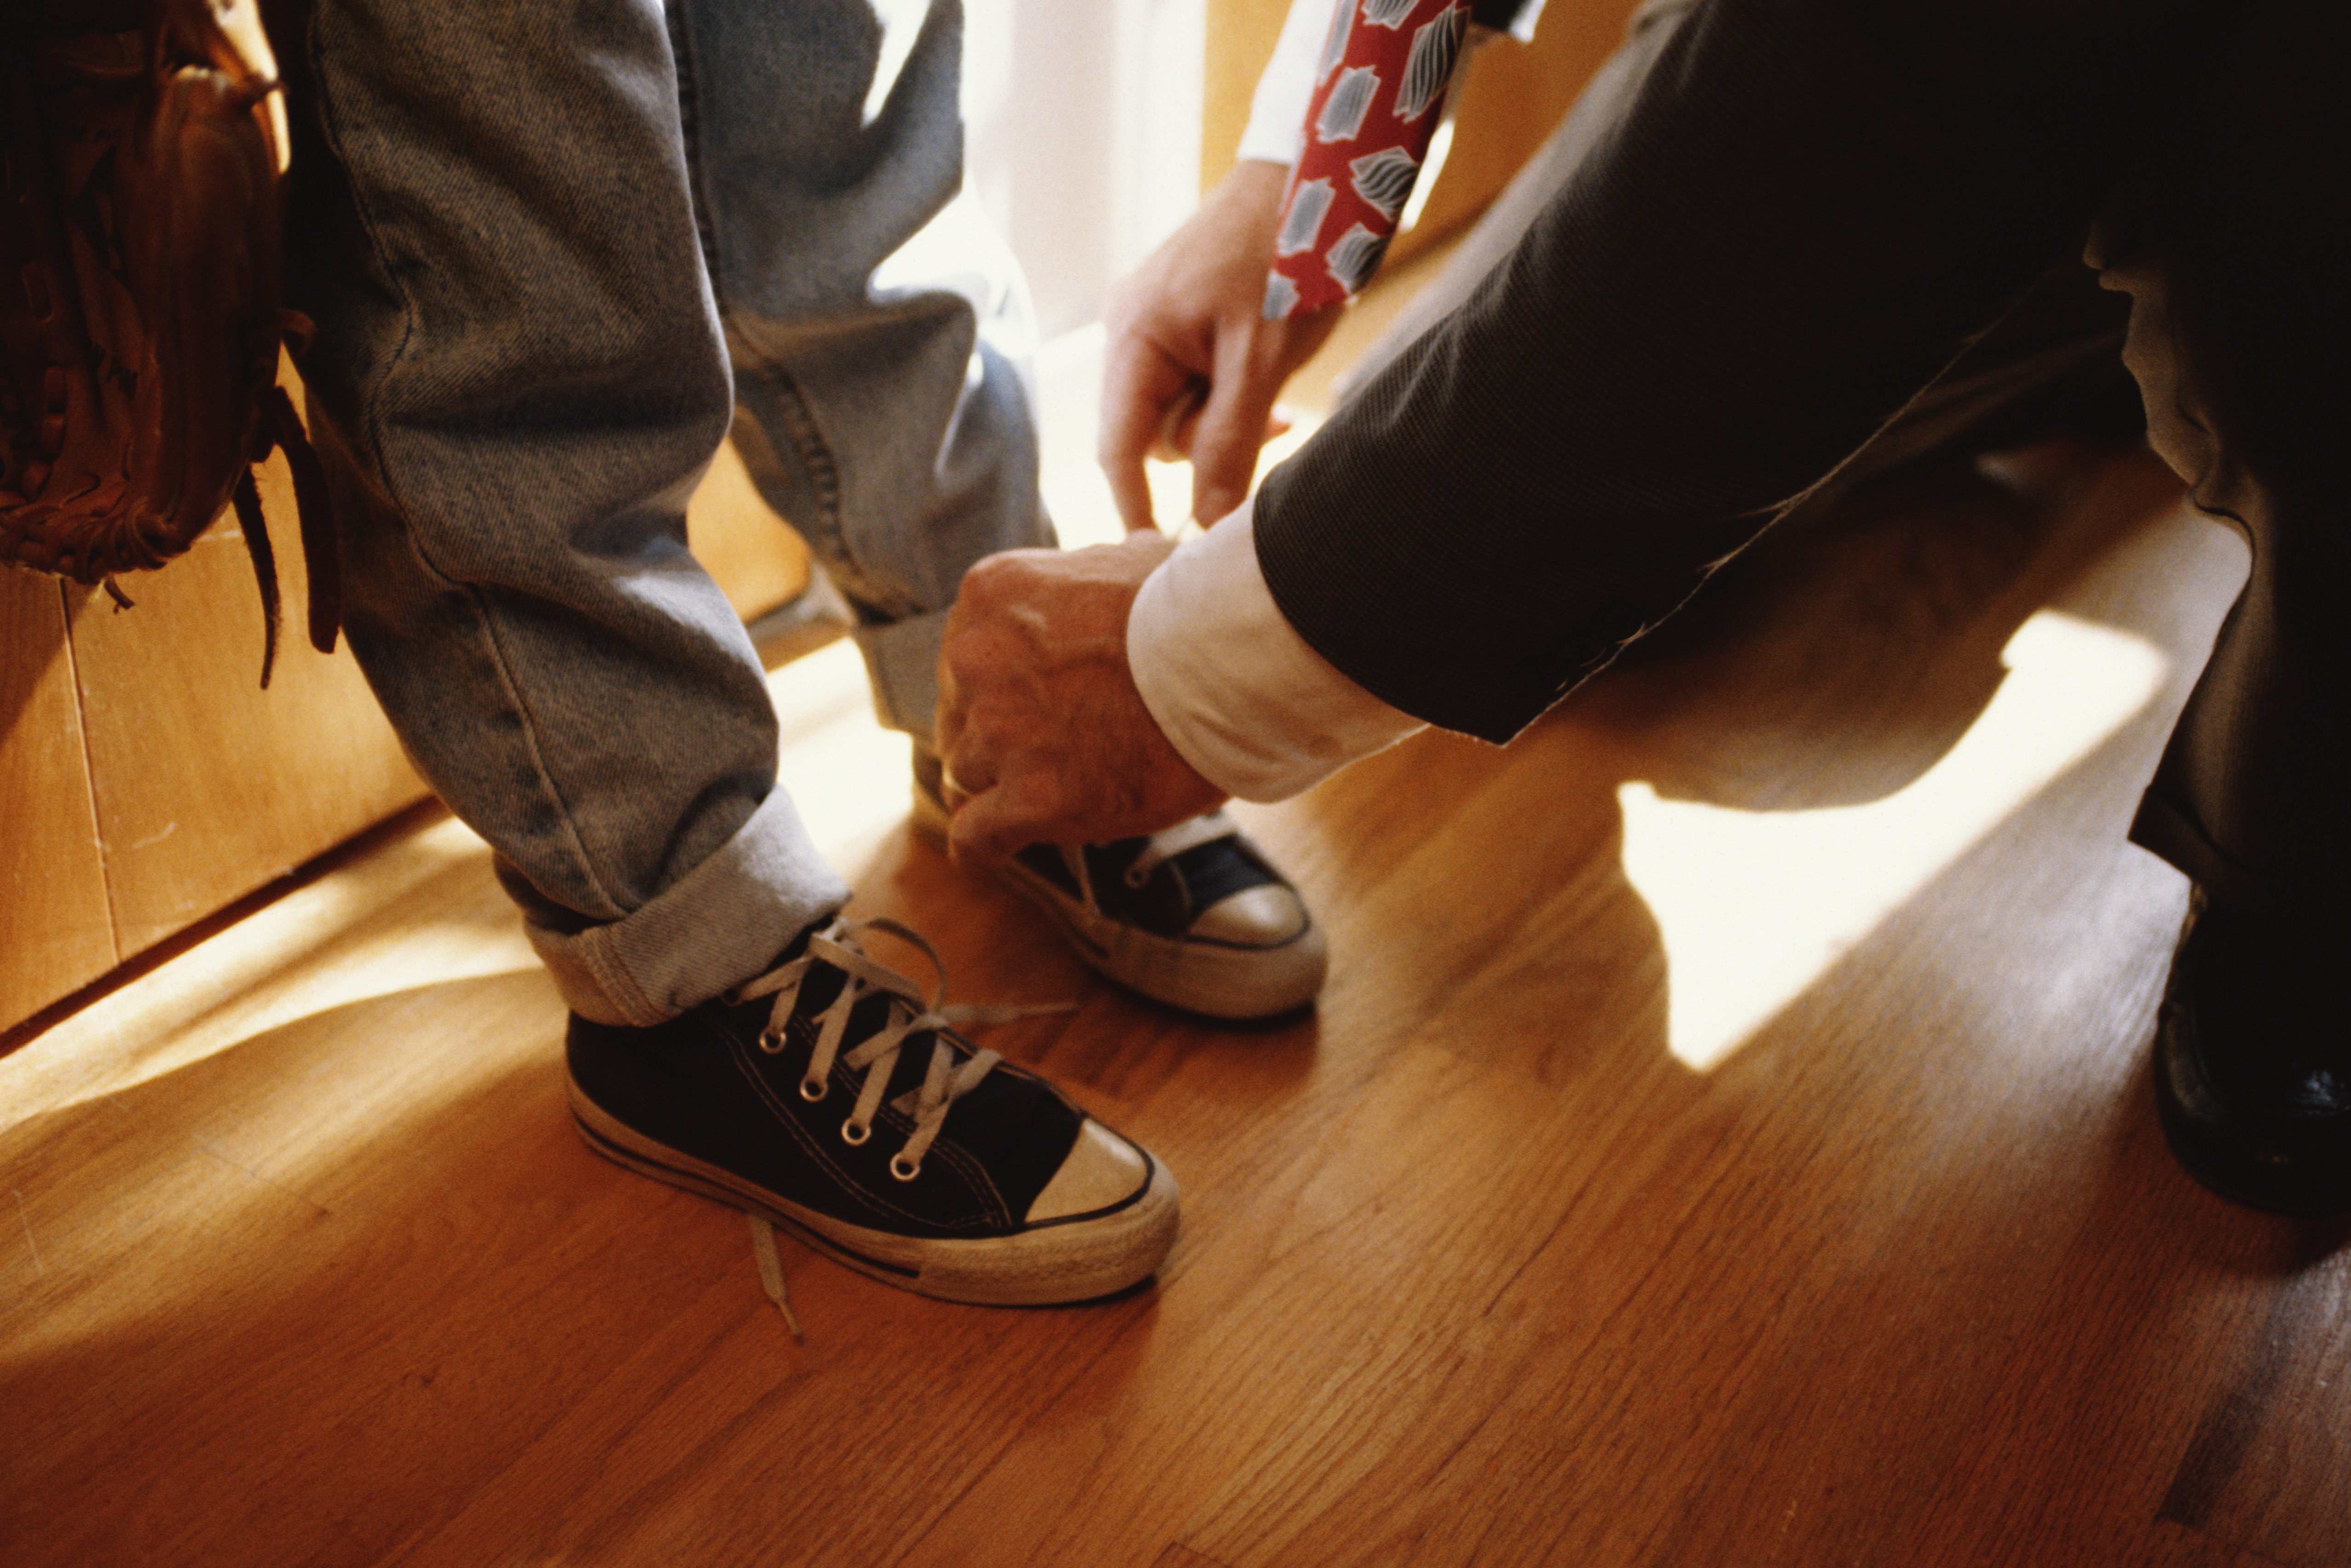 Father tying child's shoelaces